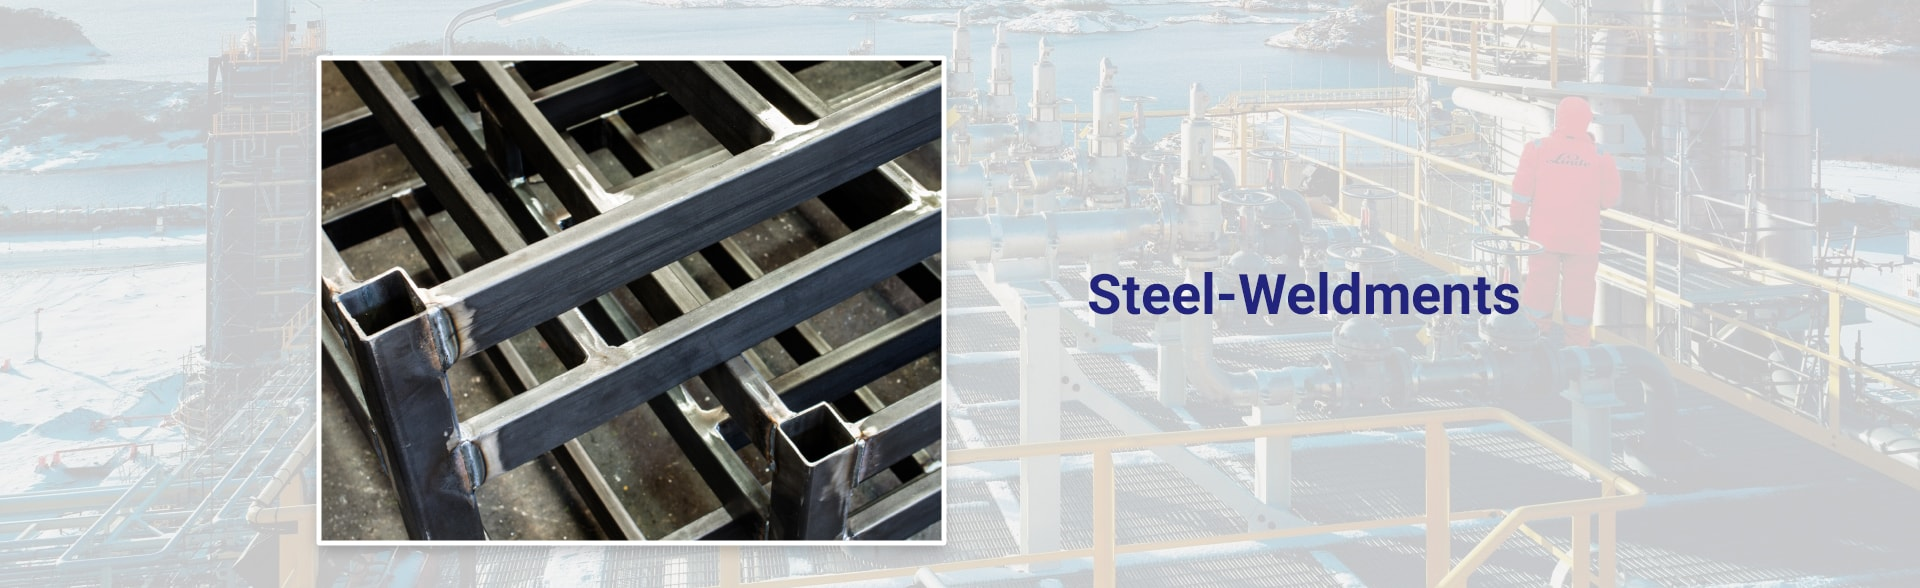 Steel Weldments